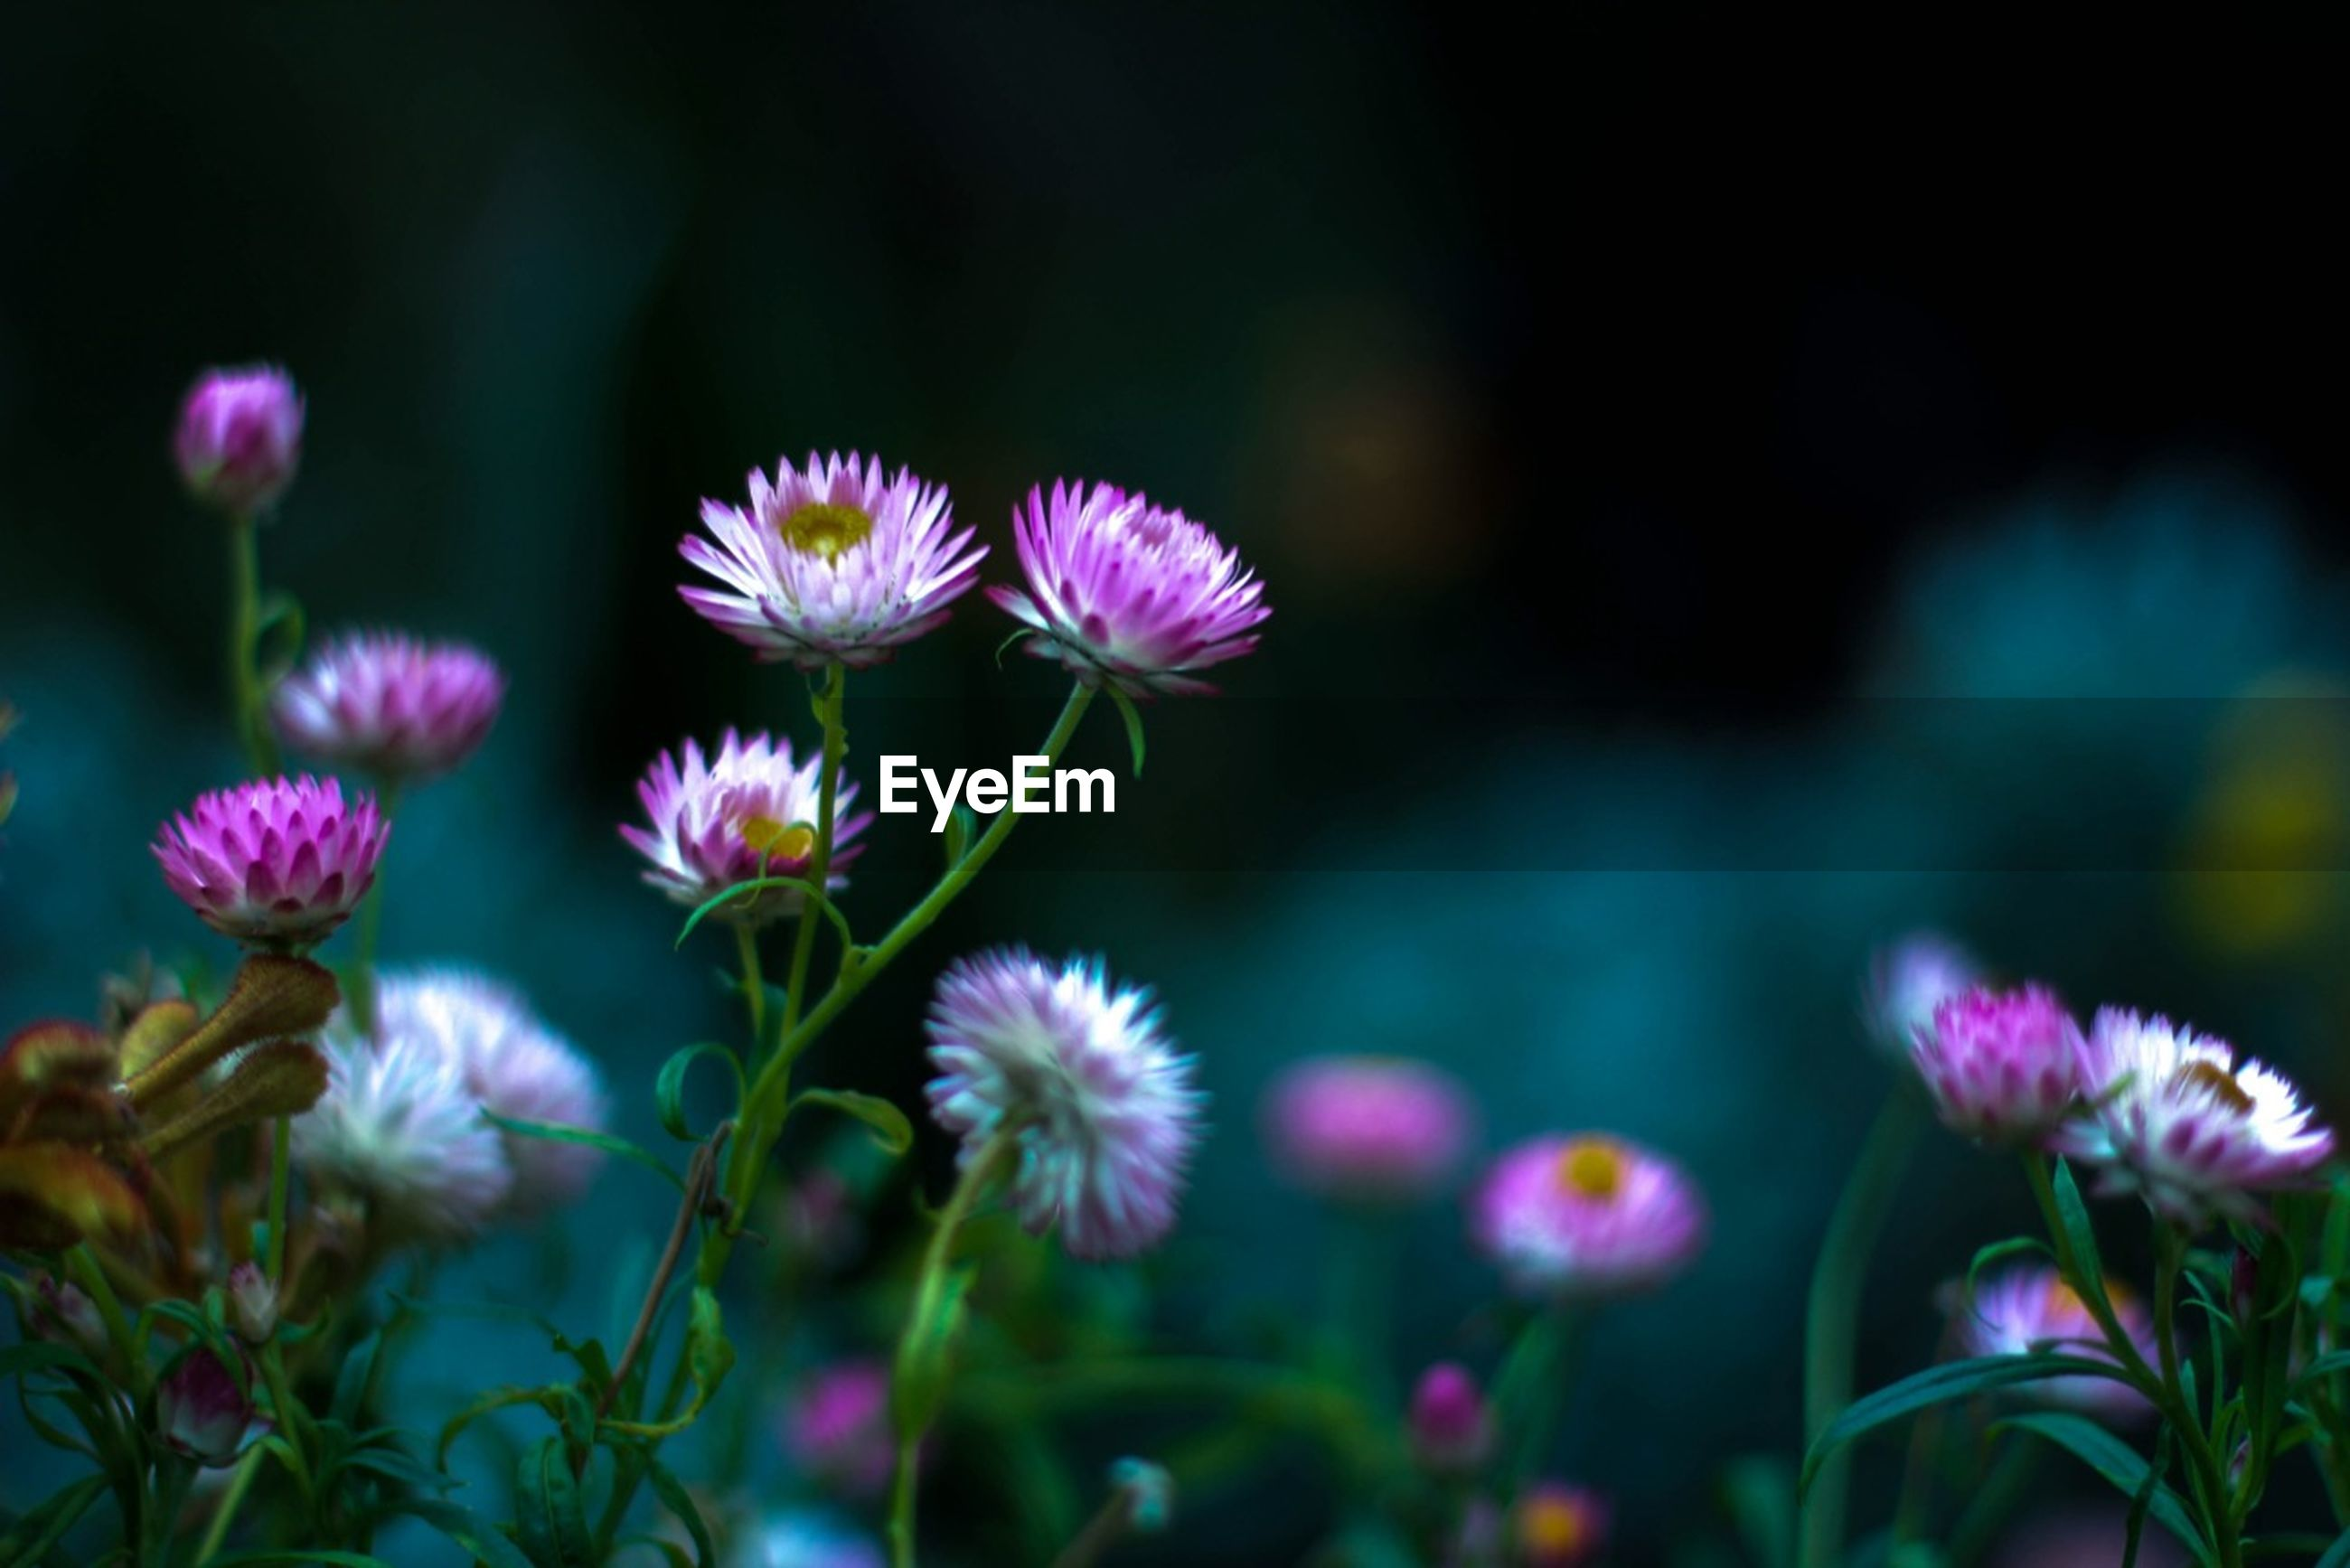 flower, freshness, fragility, growth, focus on foreground, petal, beauty in nature, close-up, flower head, purple, nature, stem, plant, selective focus, blooming, pink color, in bloom, bud, botany, outdoors